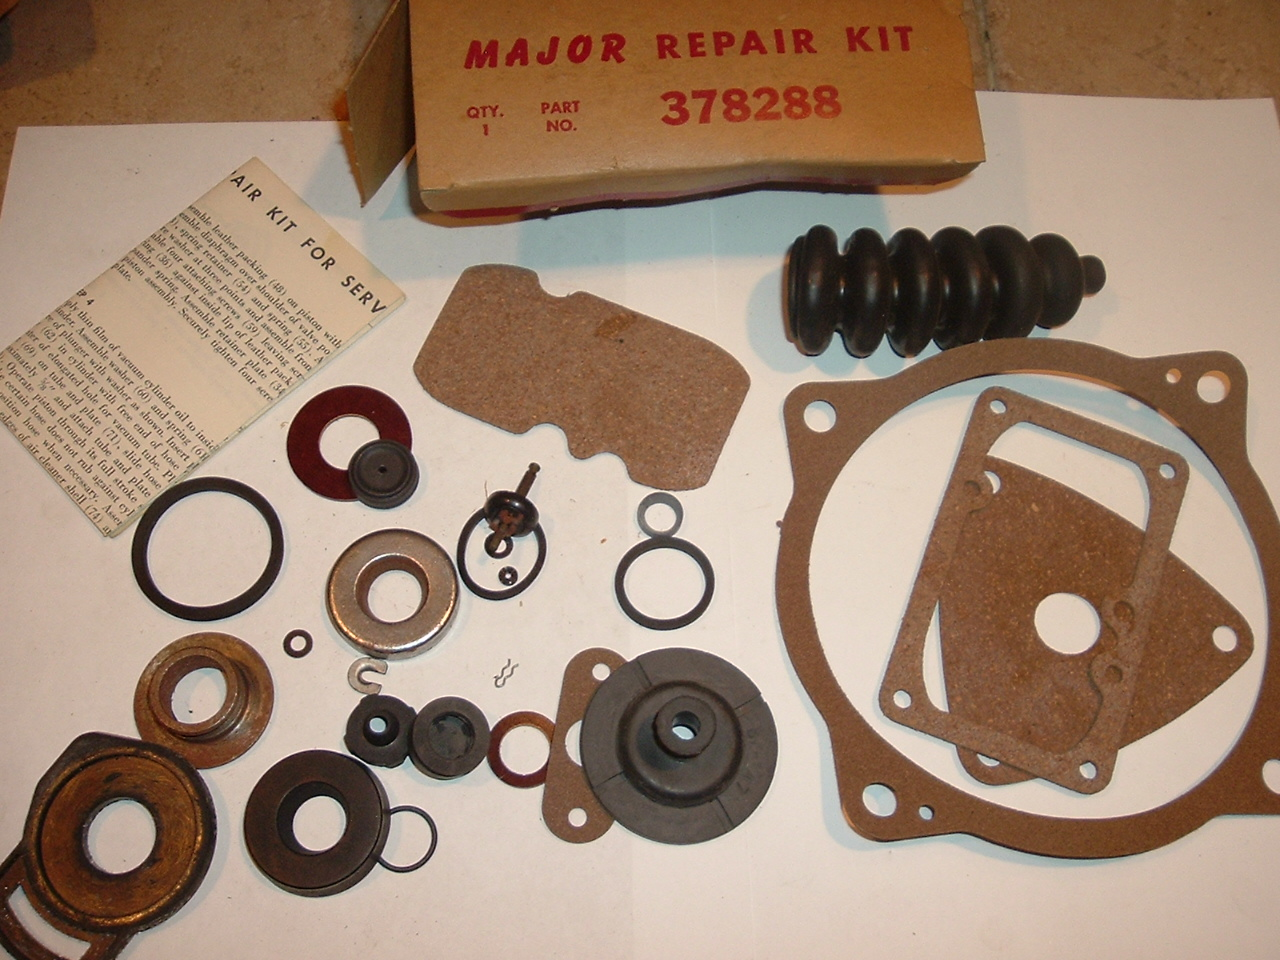 1955-70 Full Size Buick & Riviera Parts